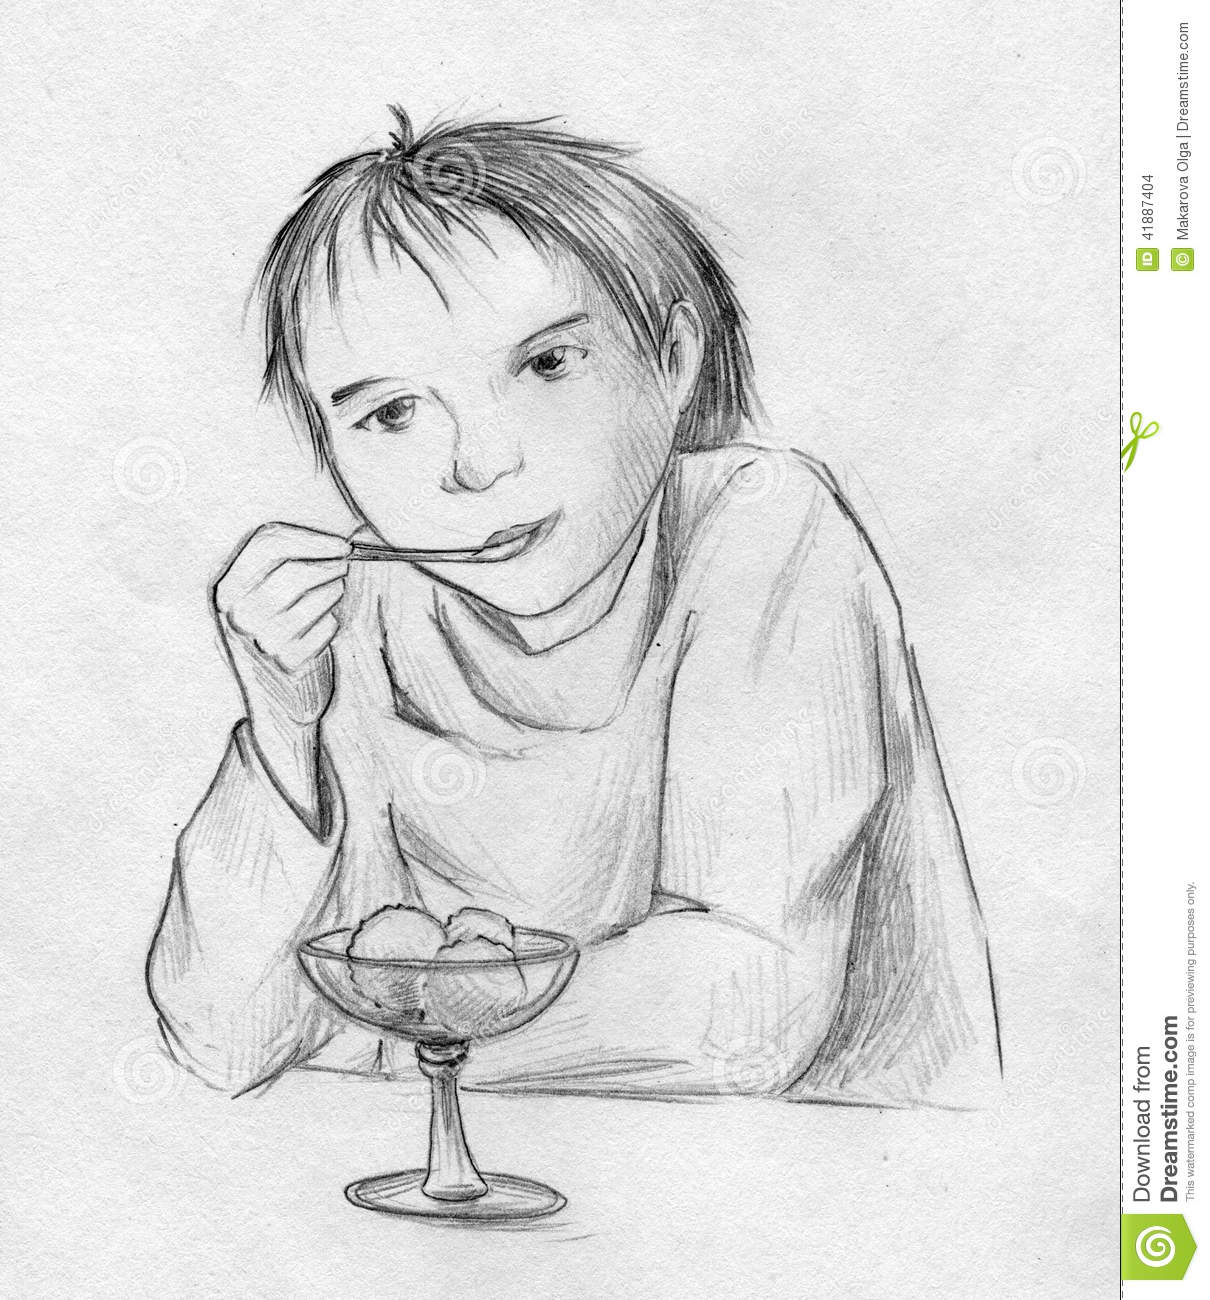 Boy Eating Ice Cream Stock Illustration. Image Of Paper - 41887404